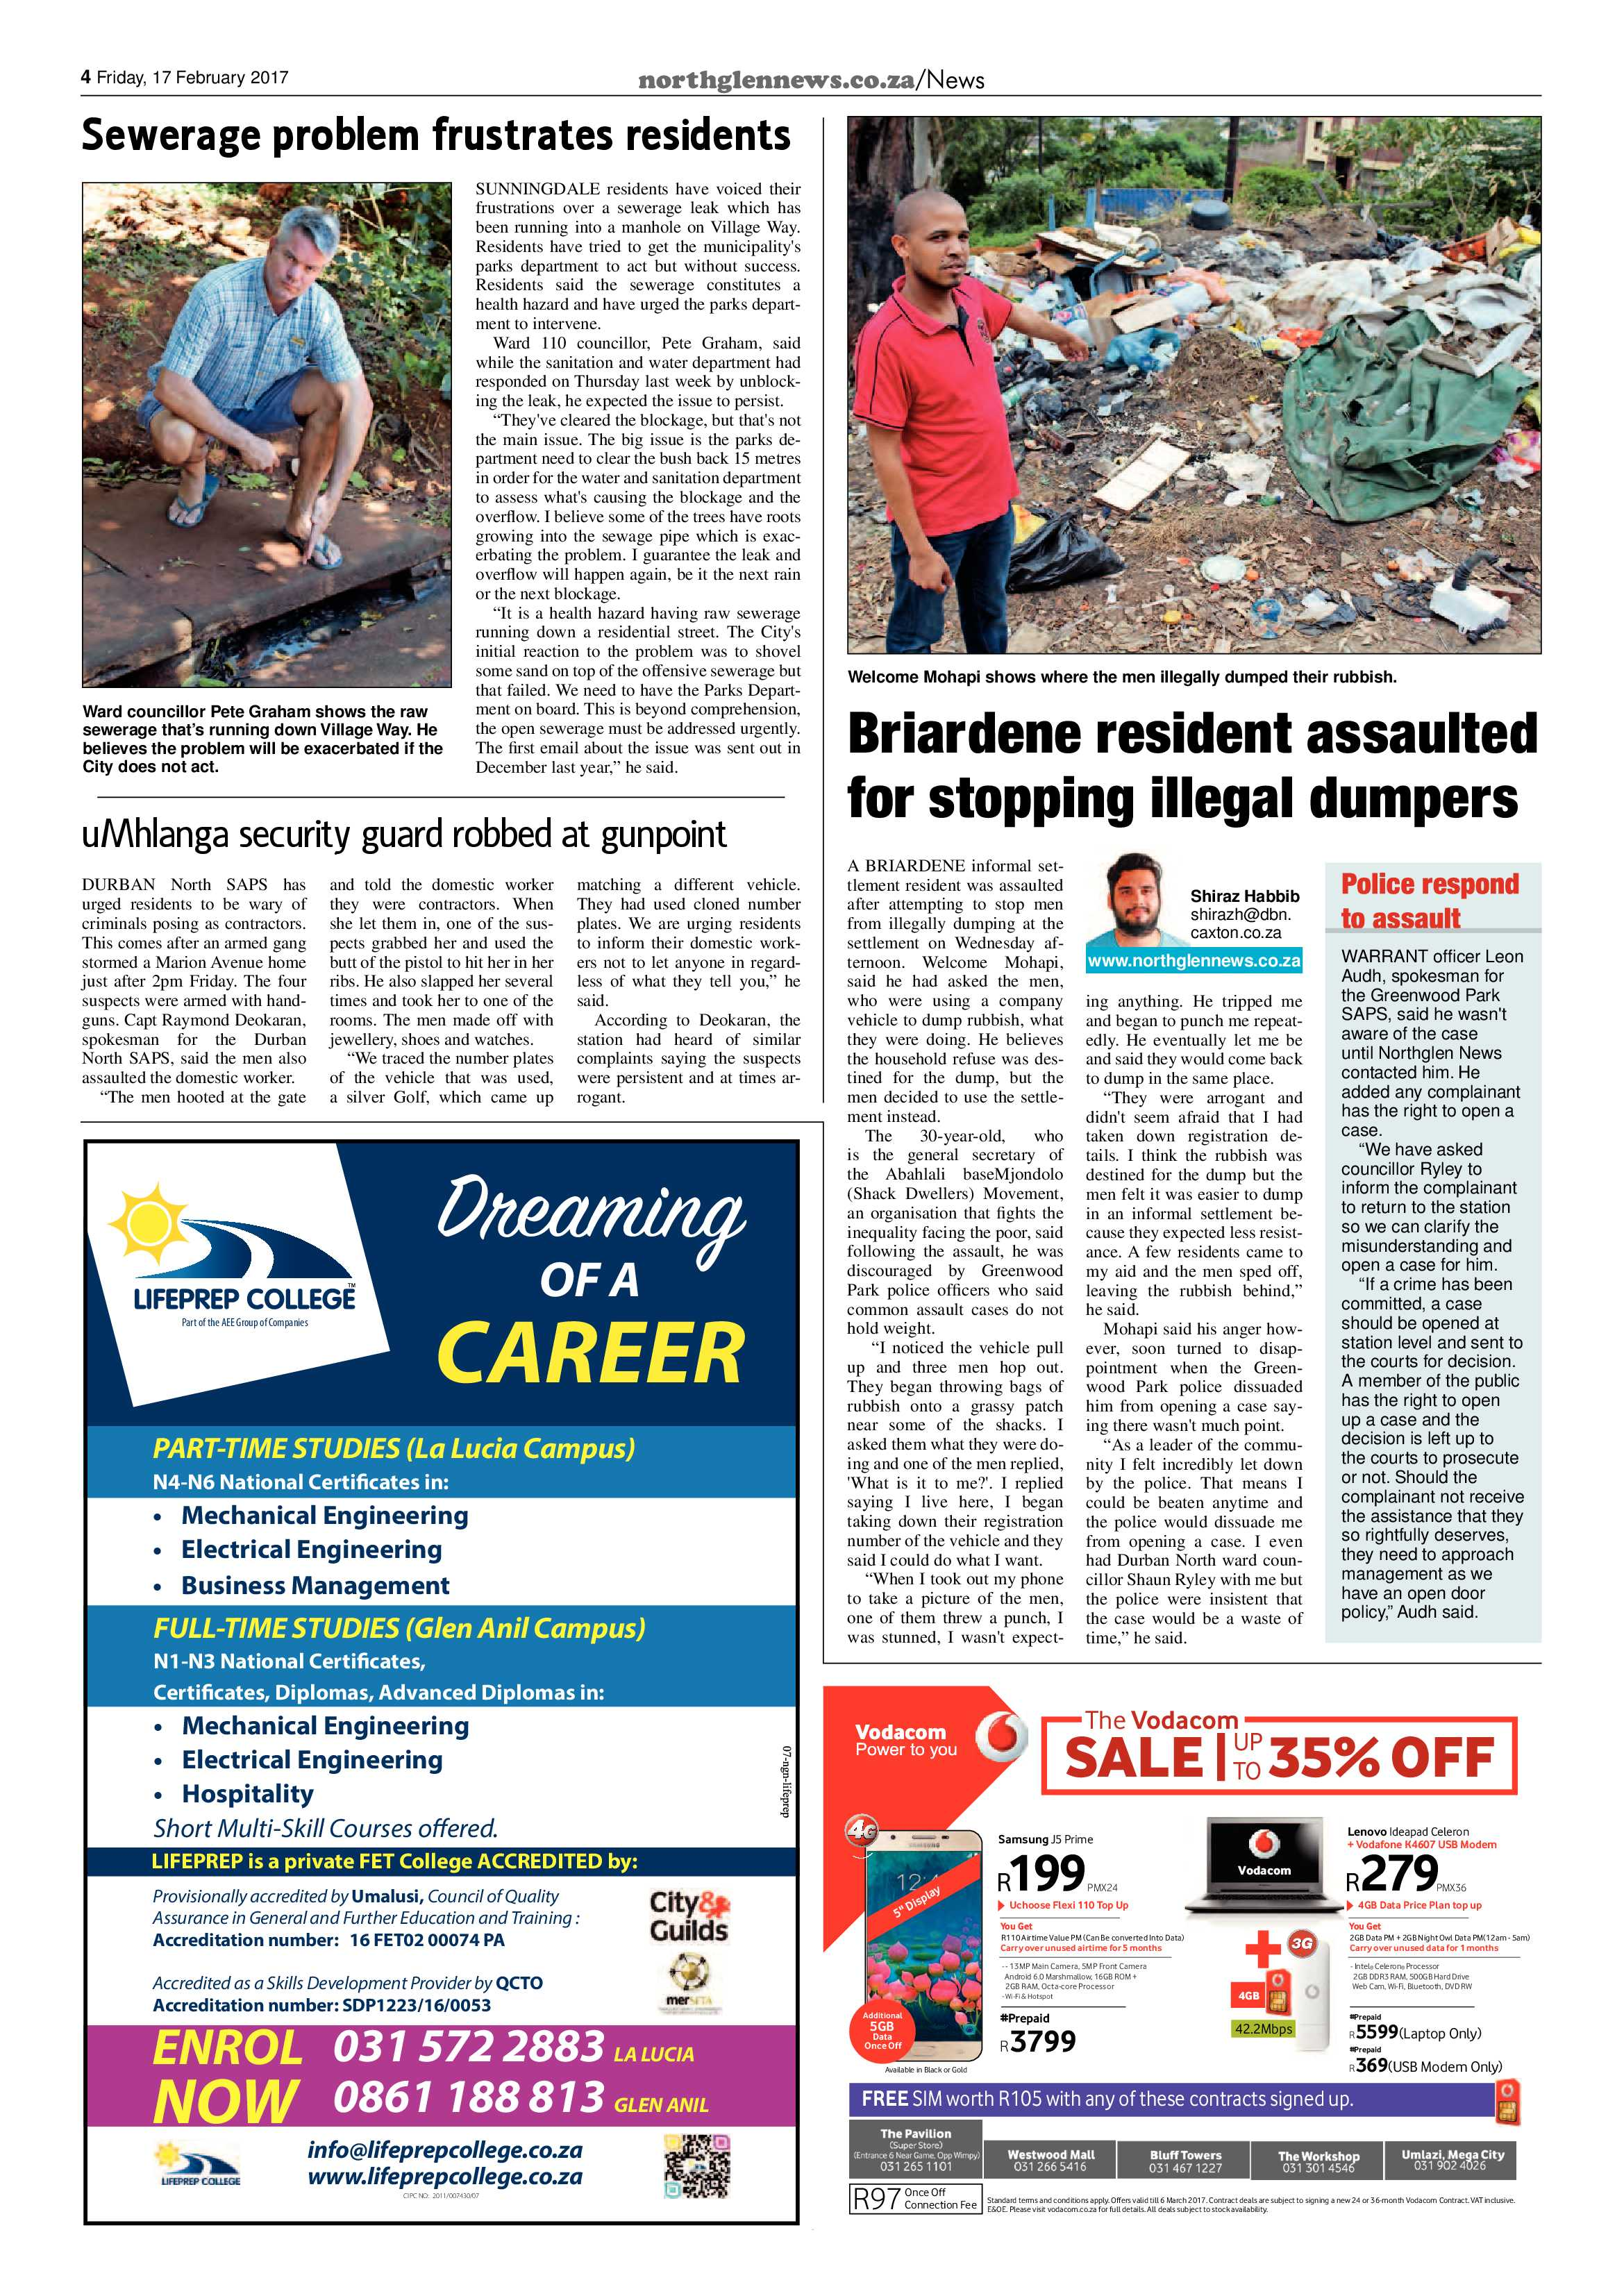 northglen-news-17-february-2017-epapers-page-4